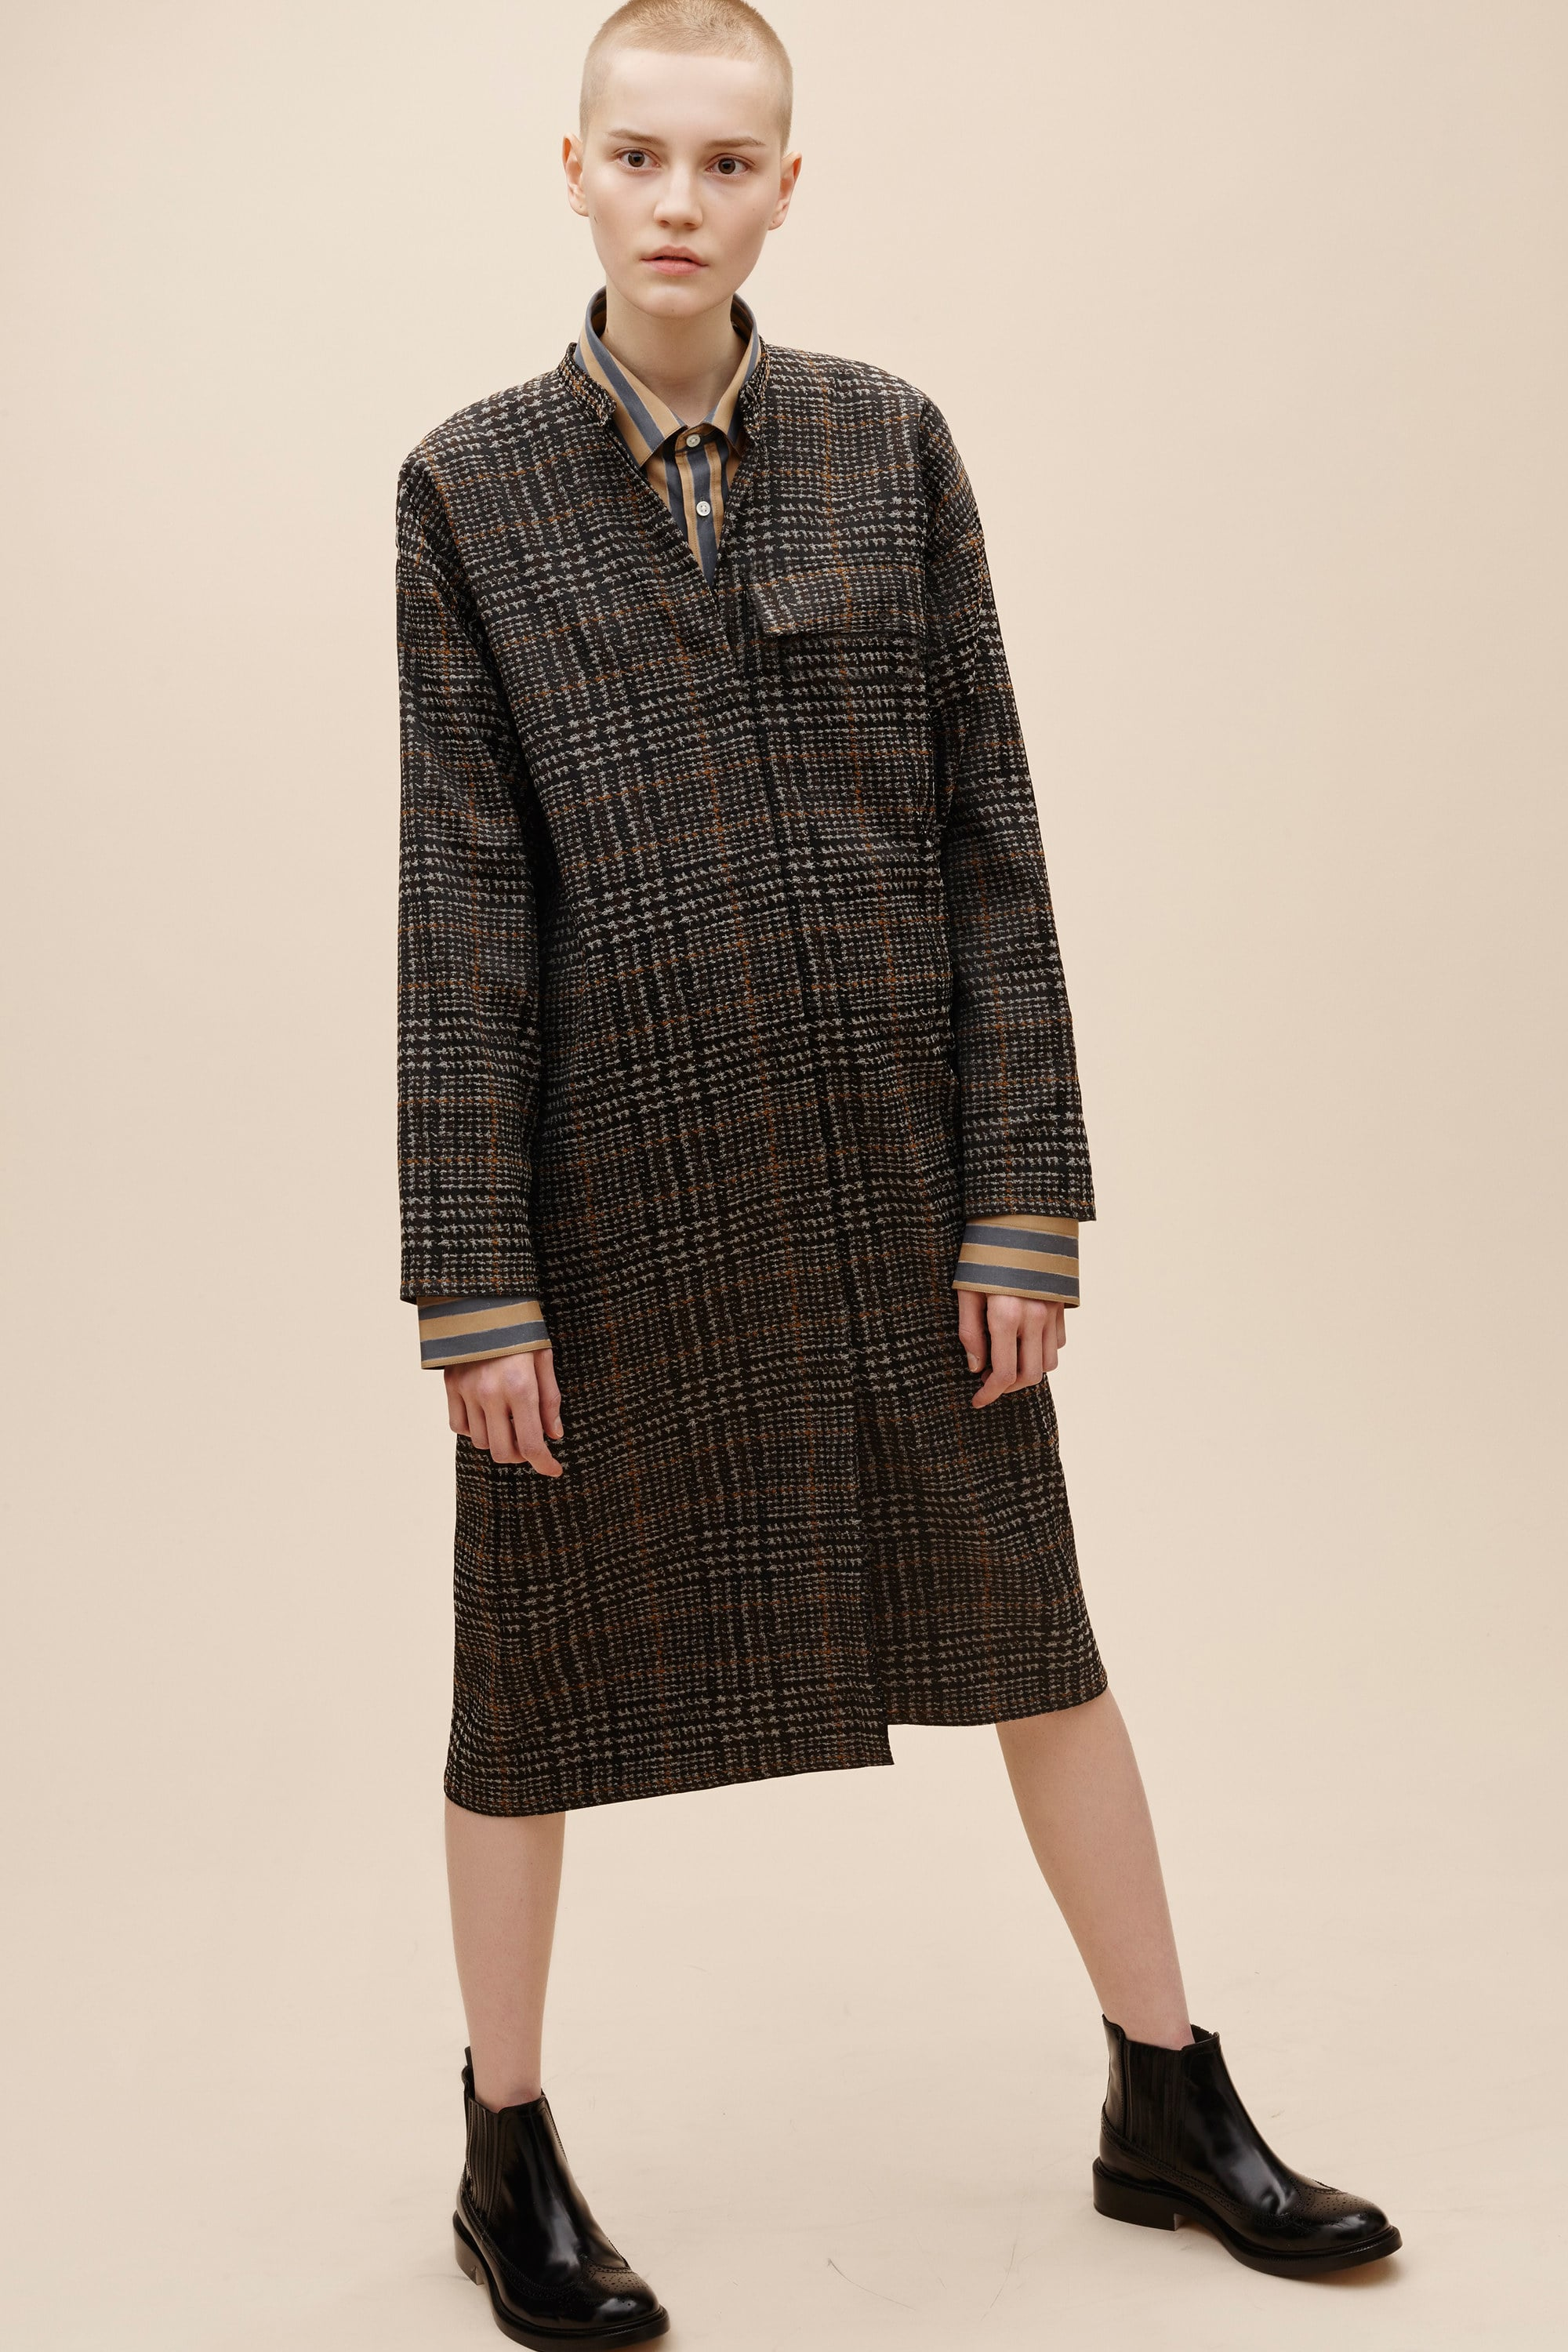 joseph-pre-fall-2016-lookbook-20.jpg